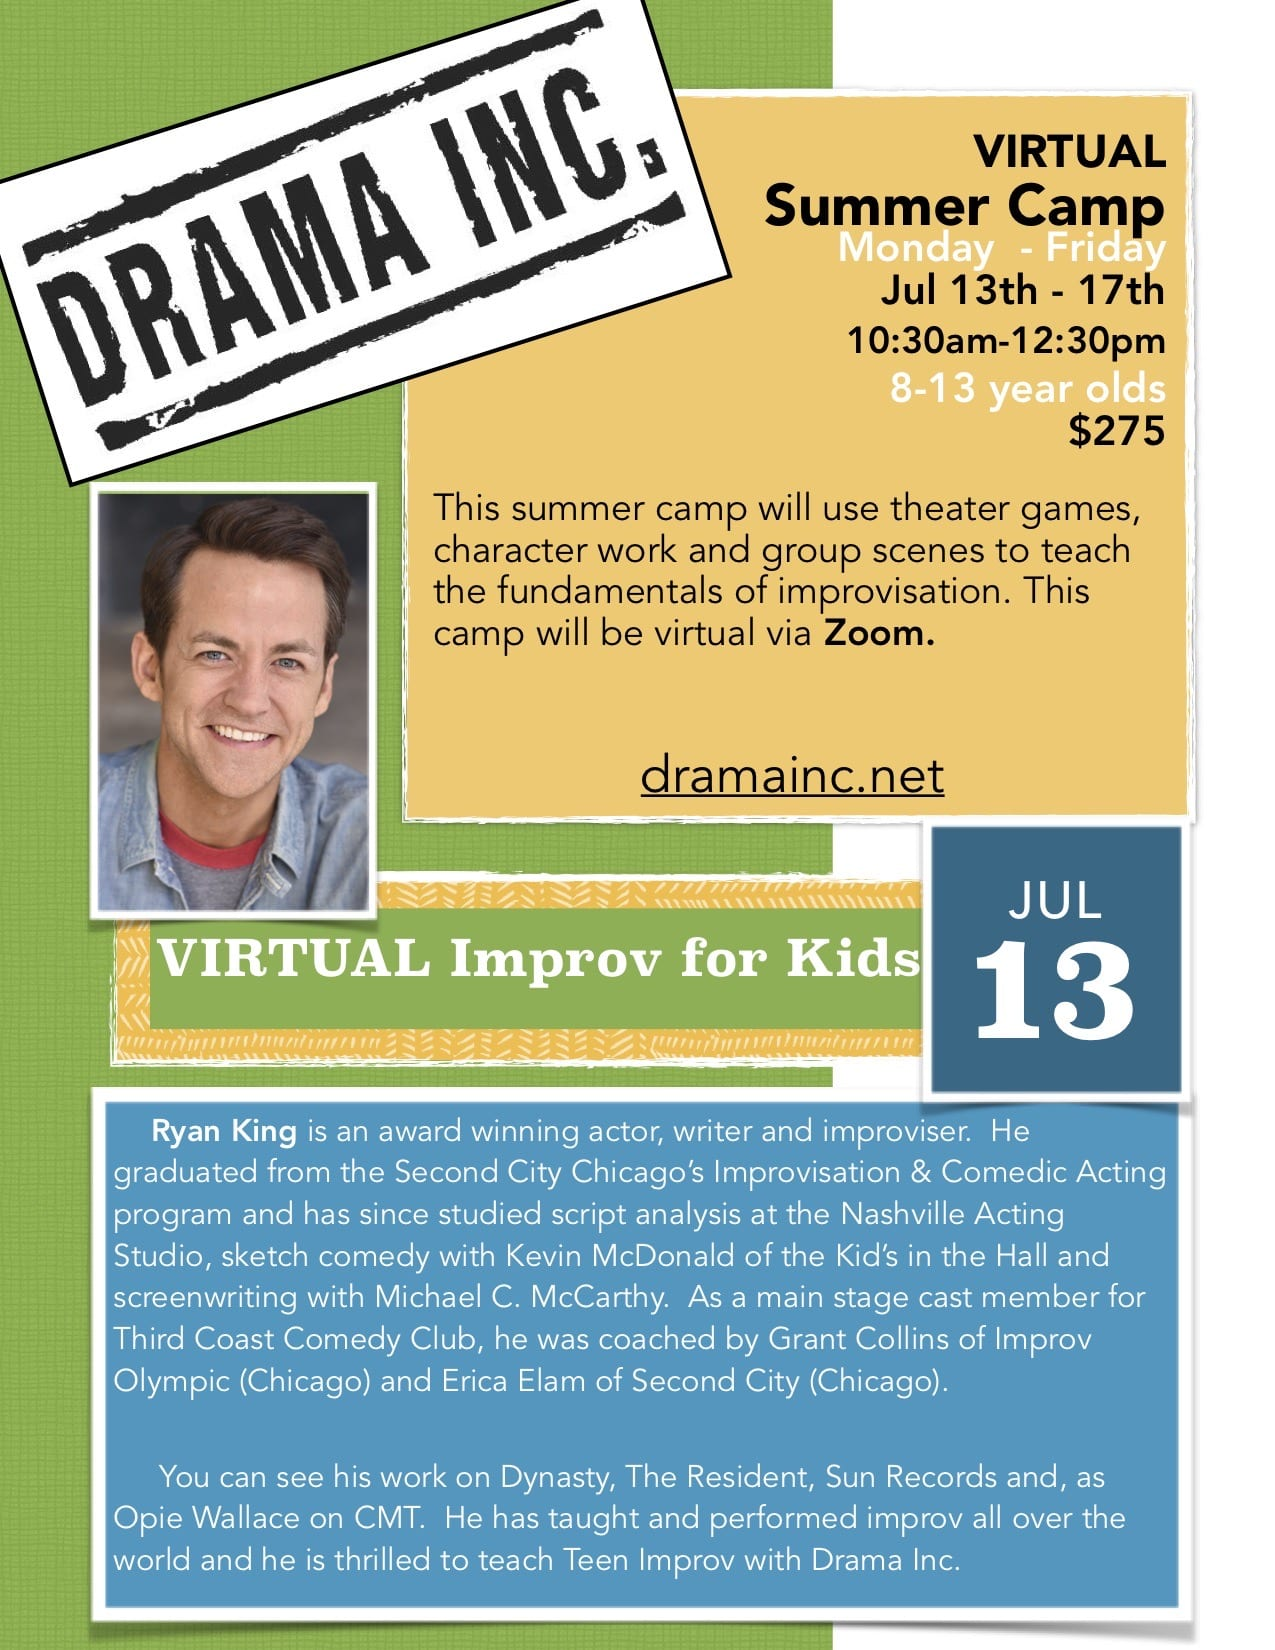 Kids Improv Virtual Summer Camp